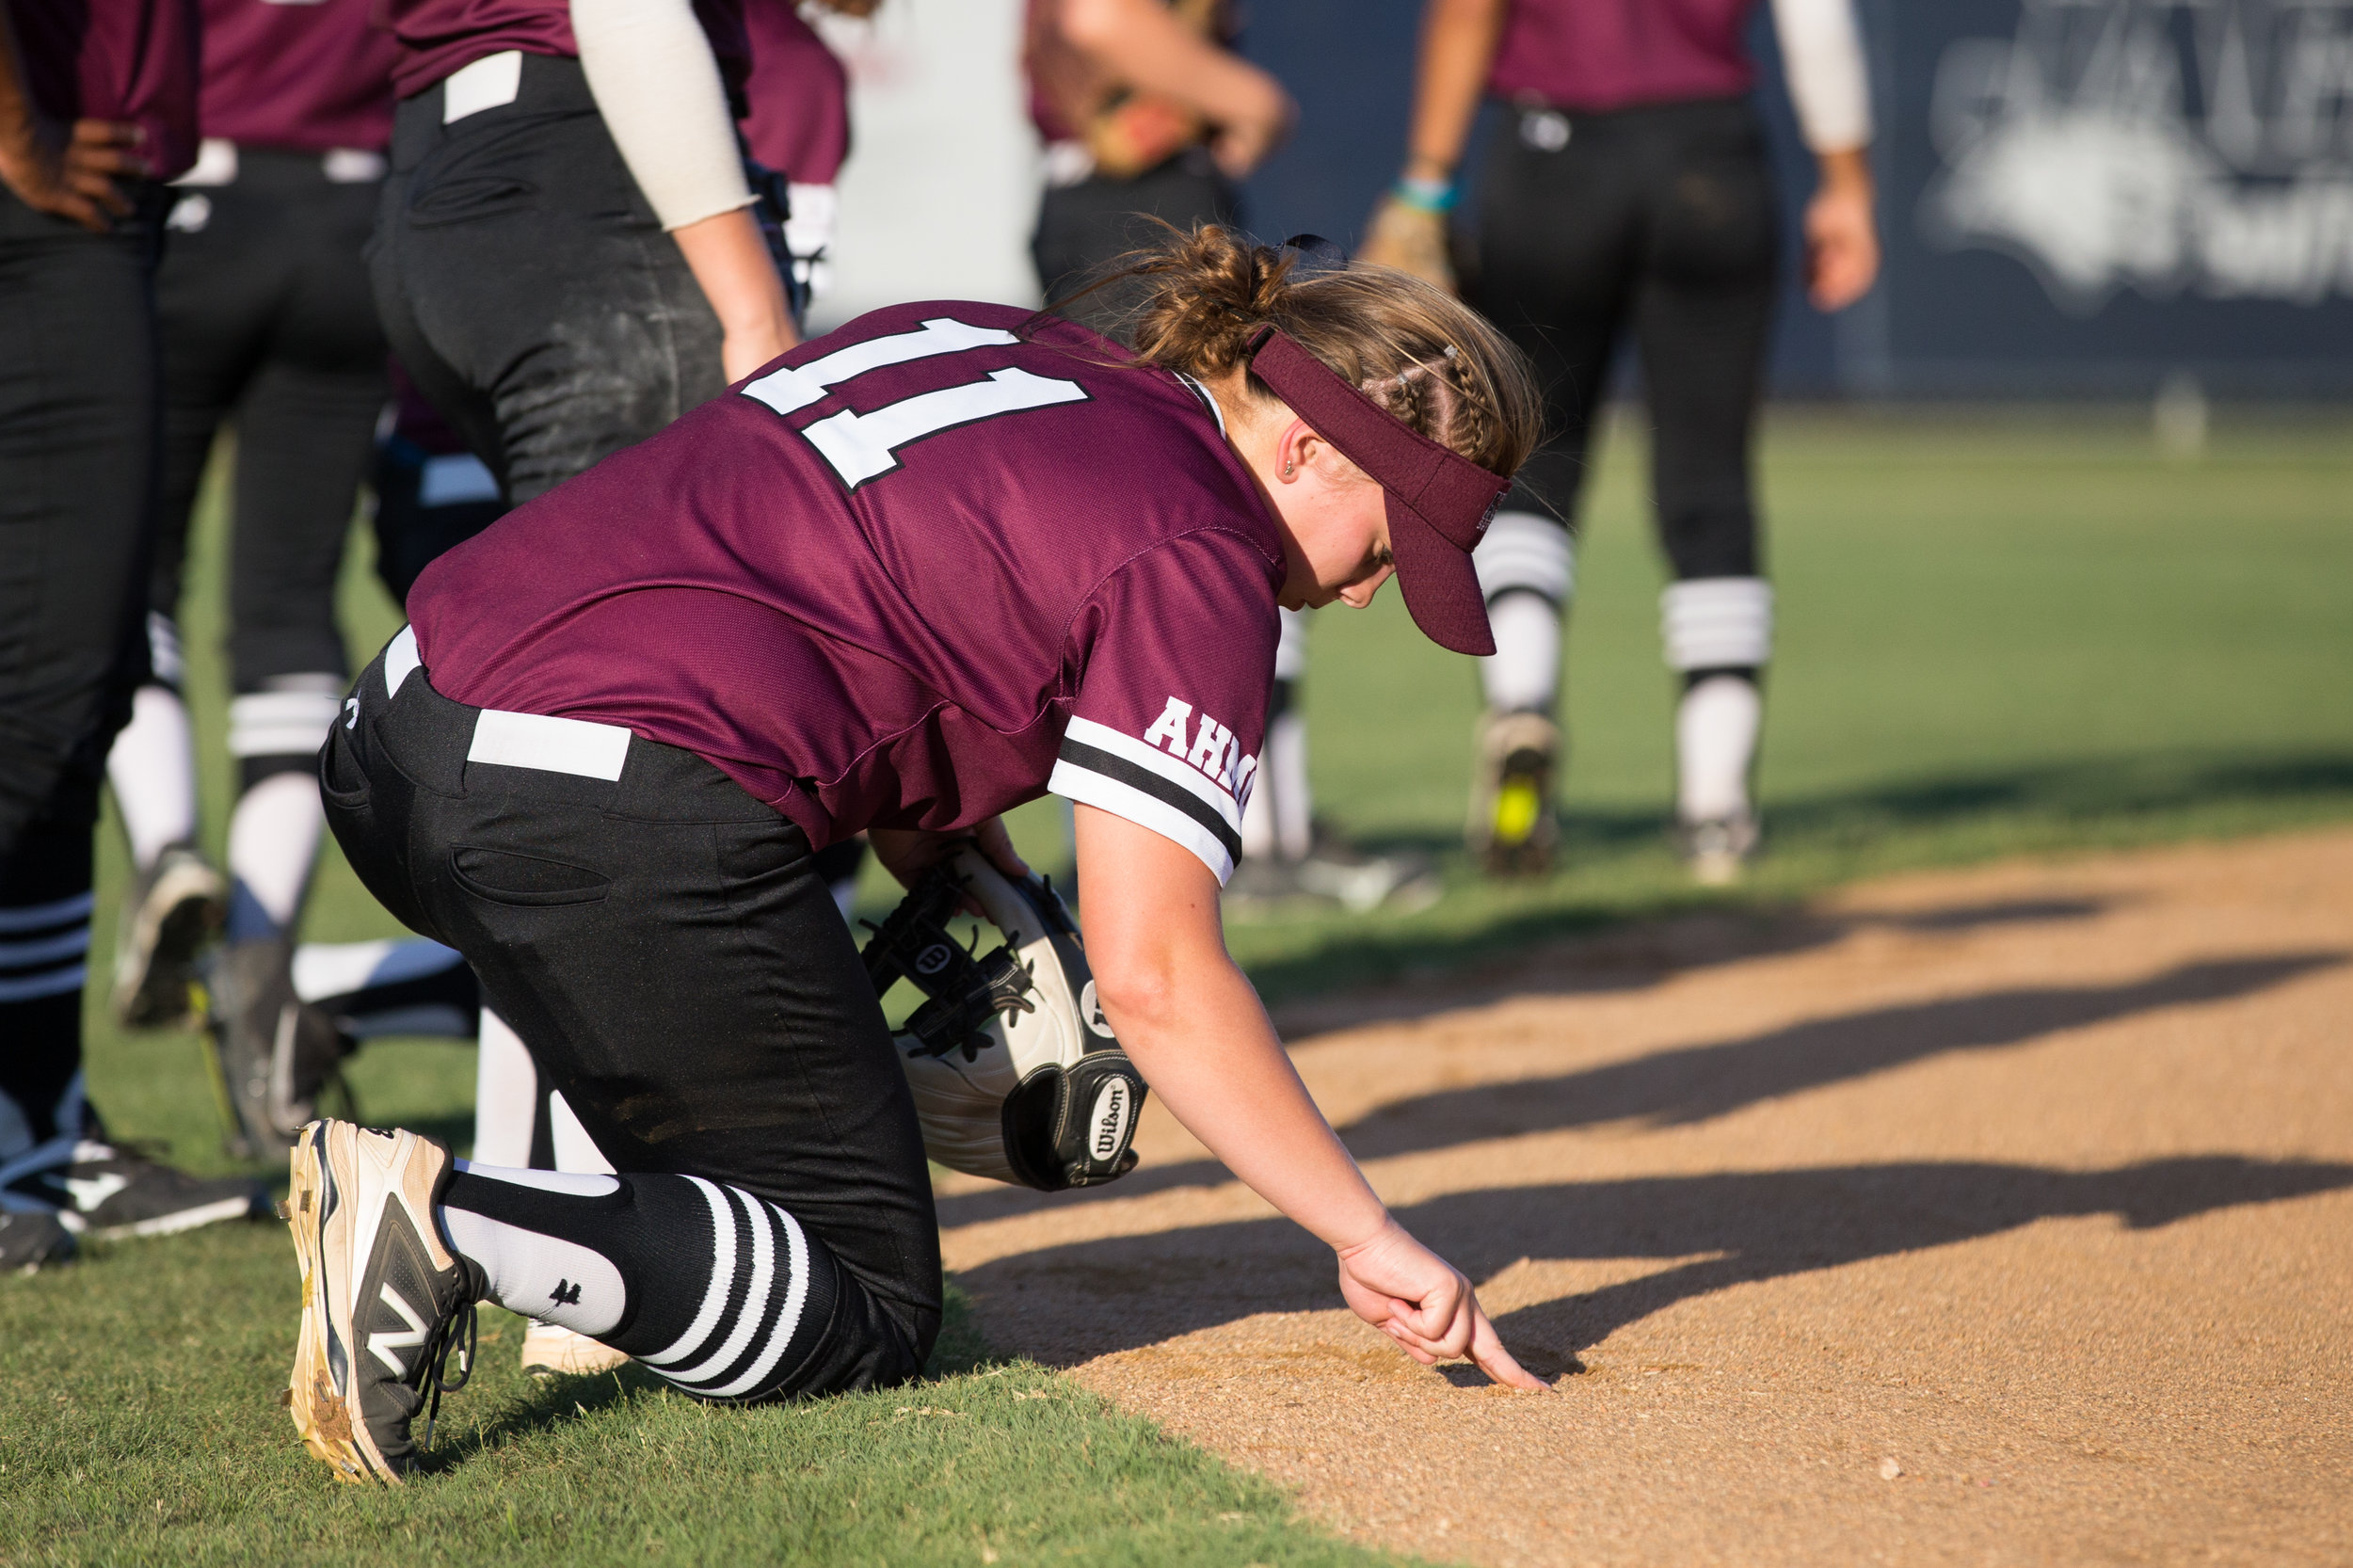 5_18 Wylie Softball-111.jpg